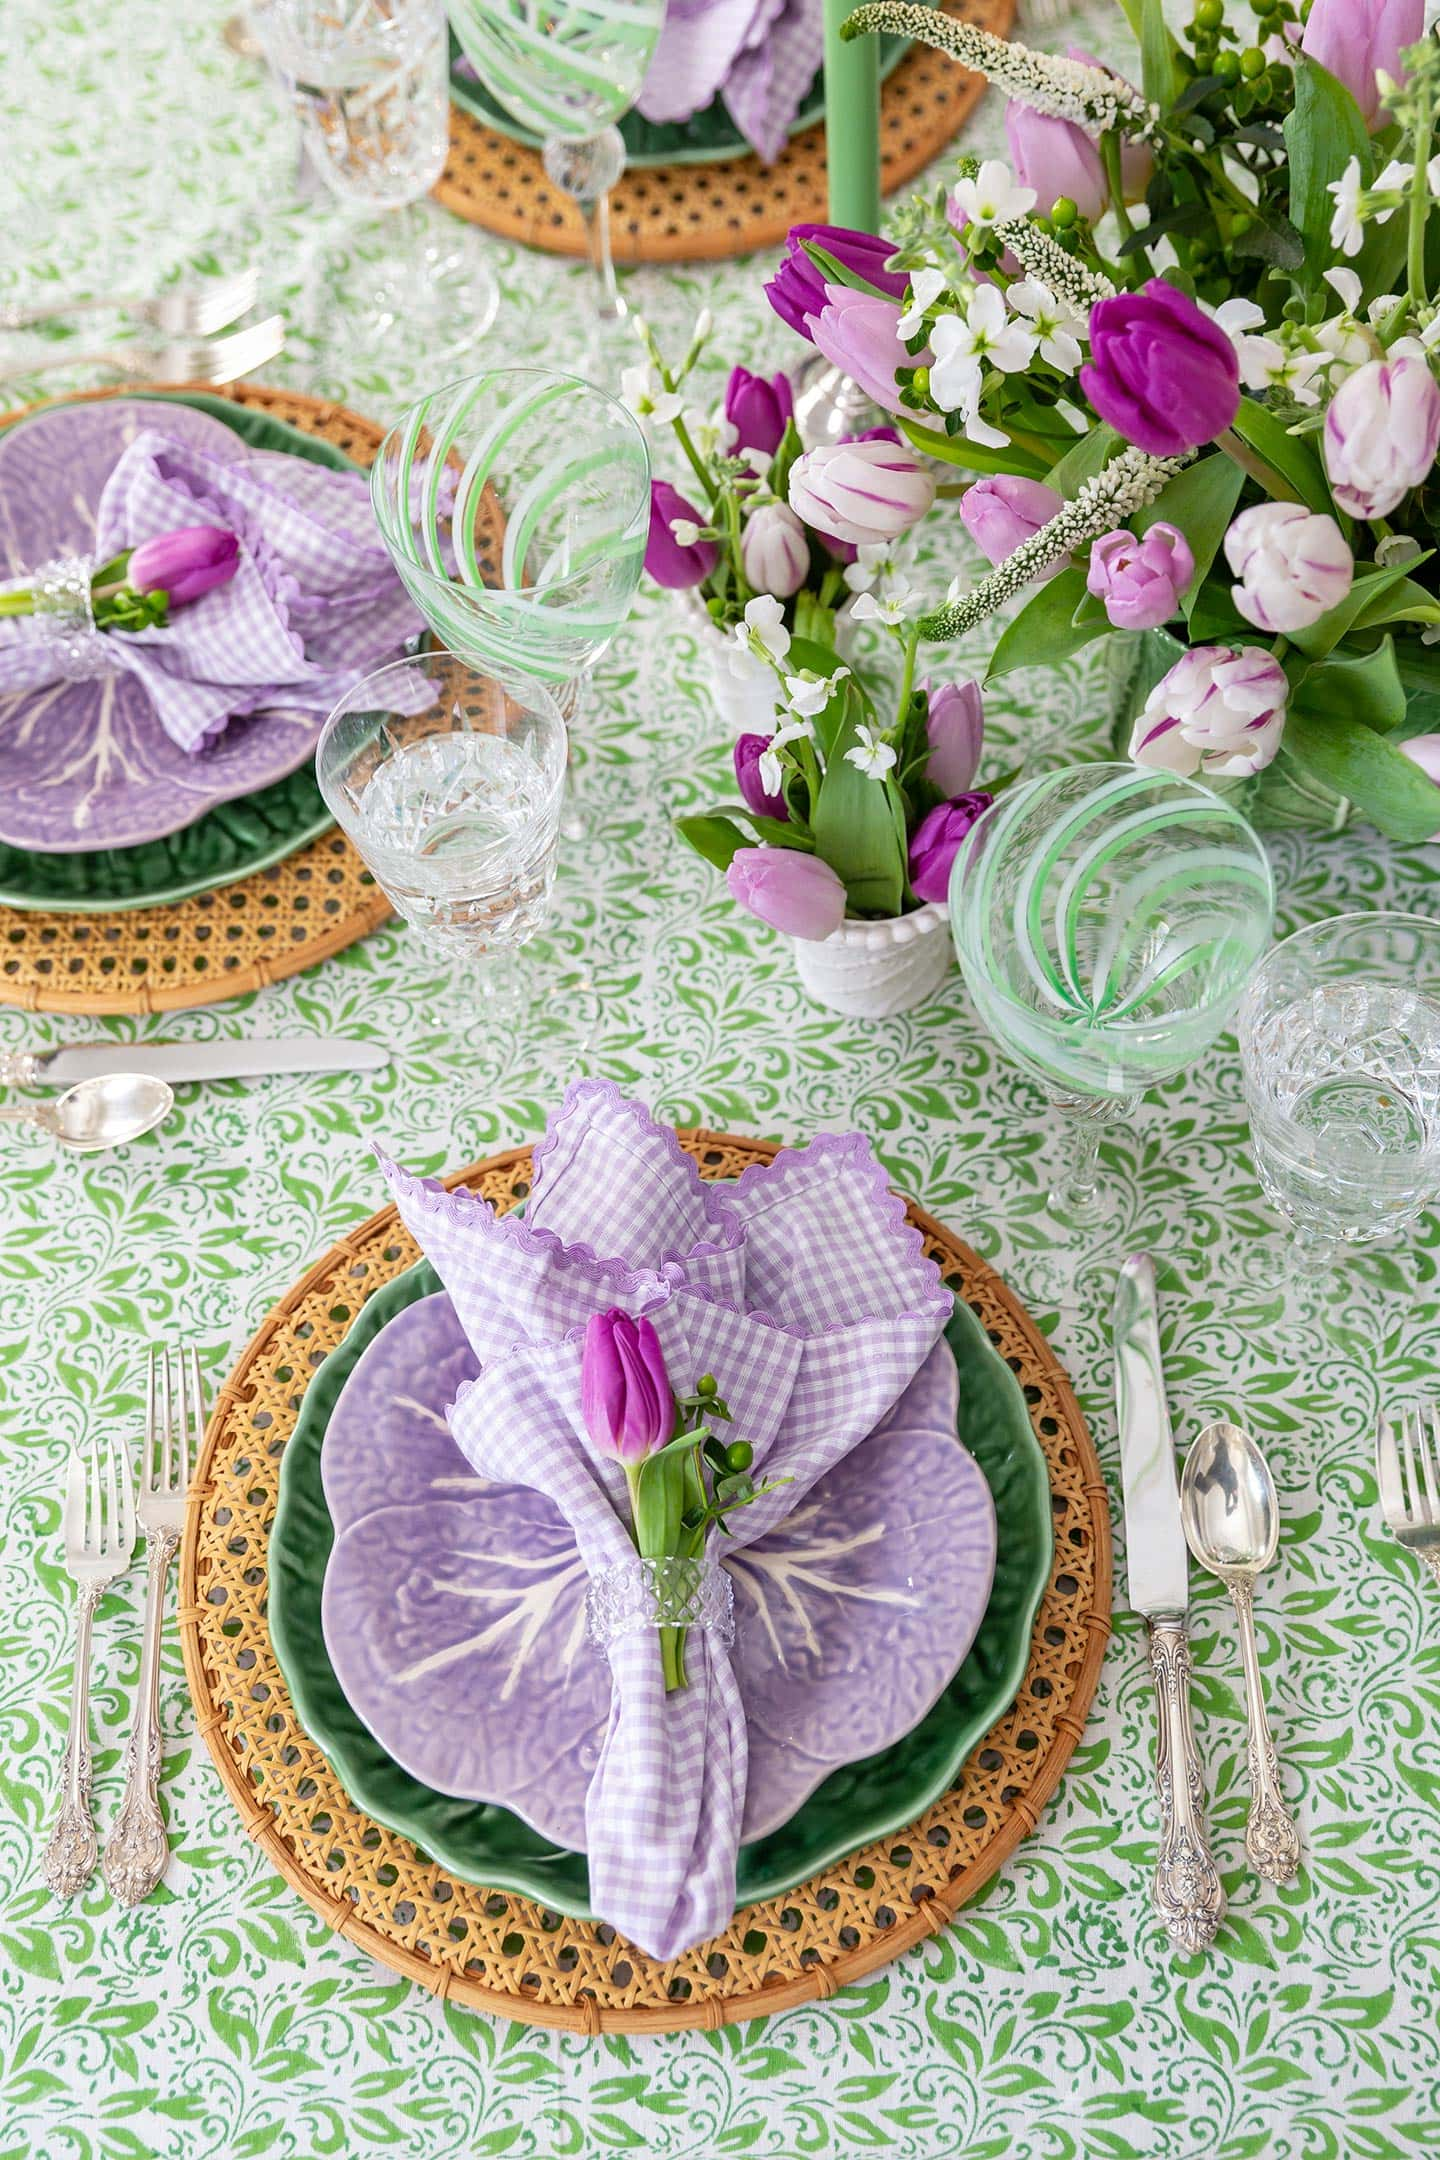 spring flower plates on table.